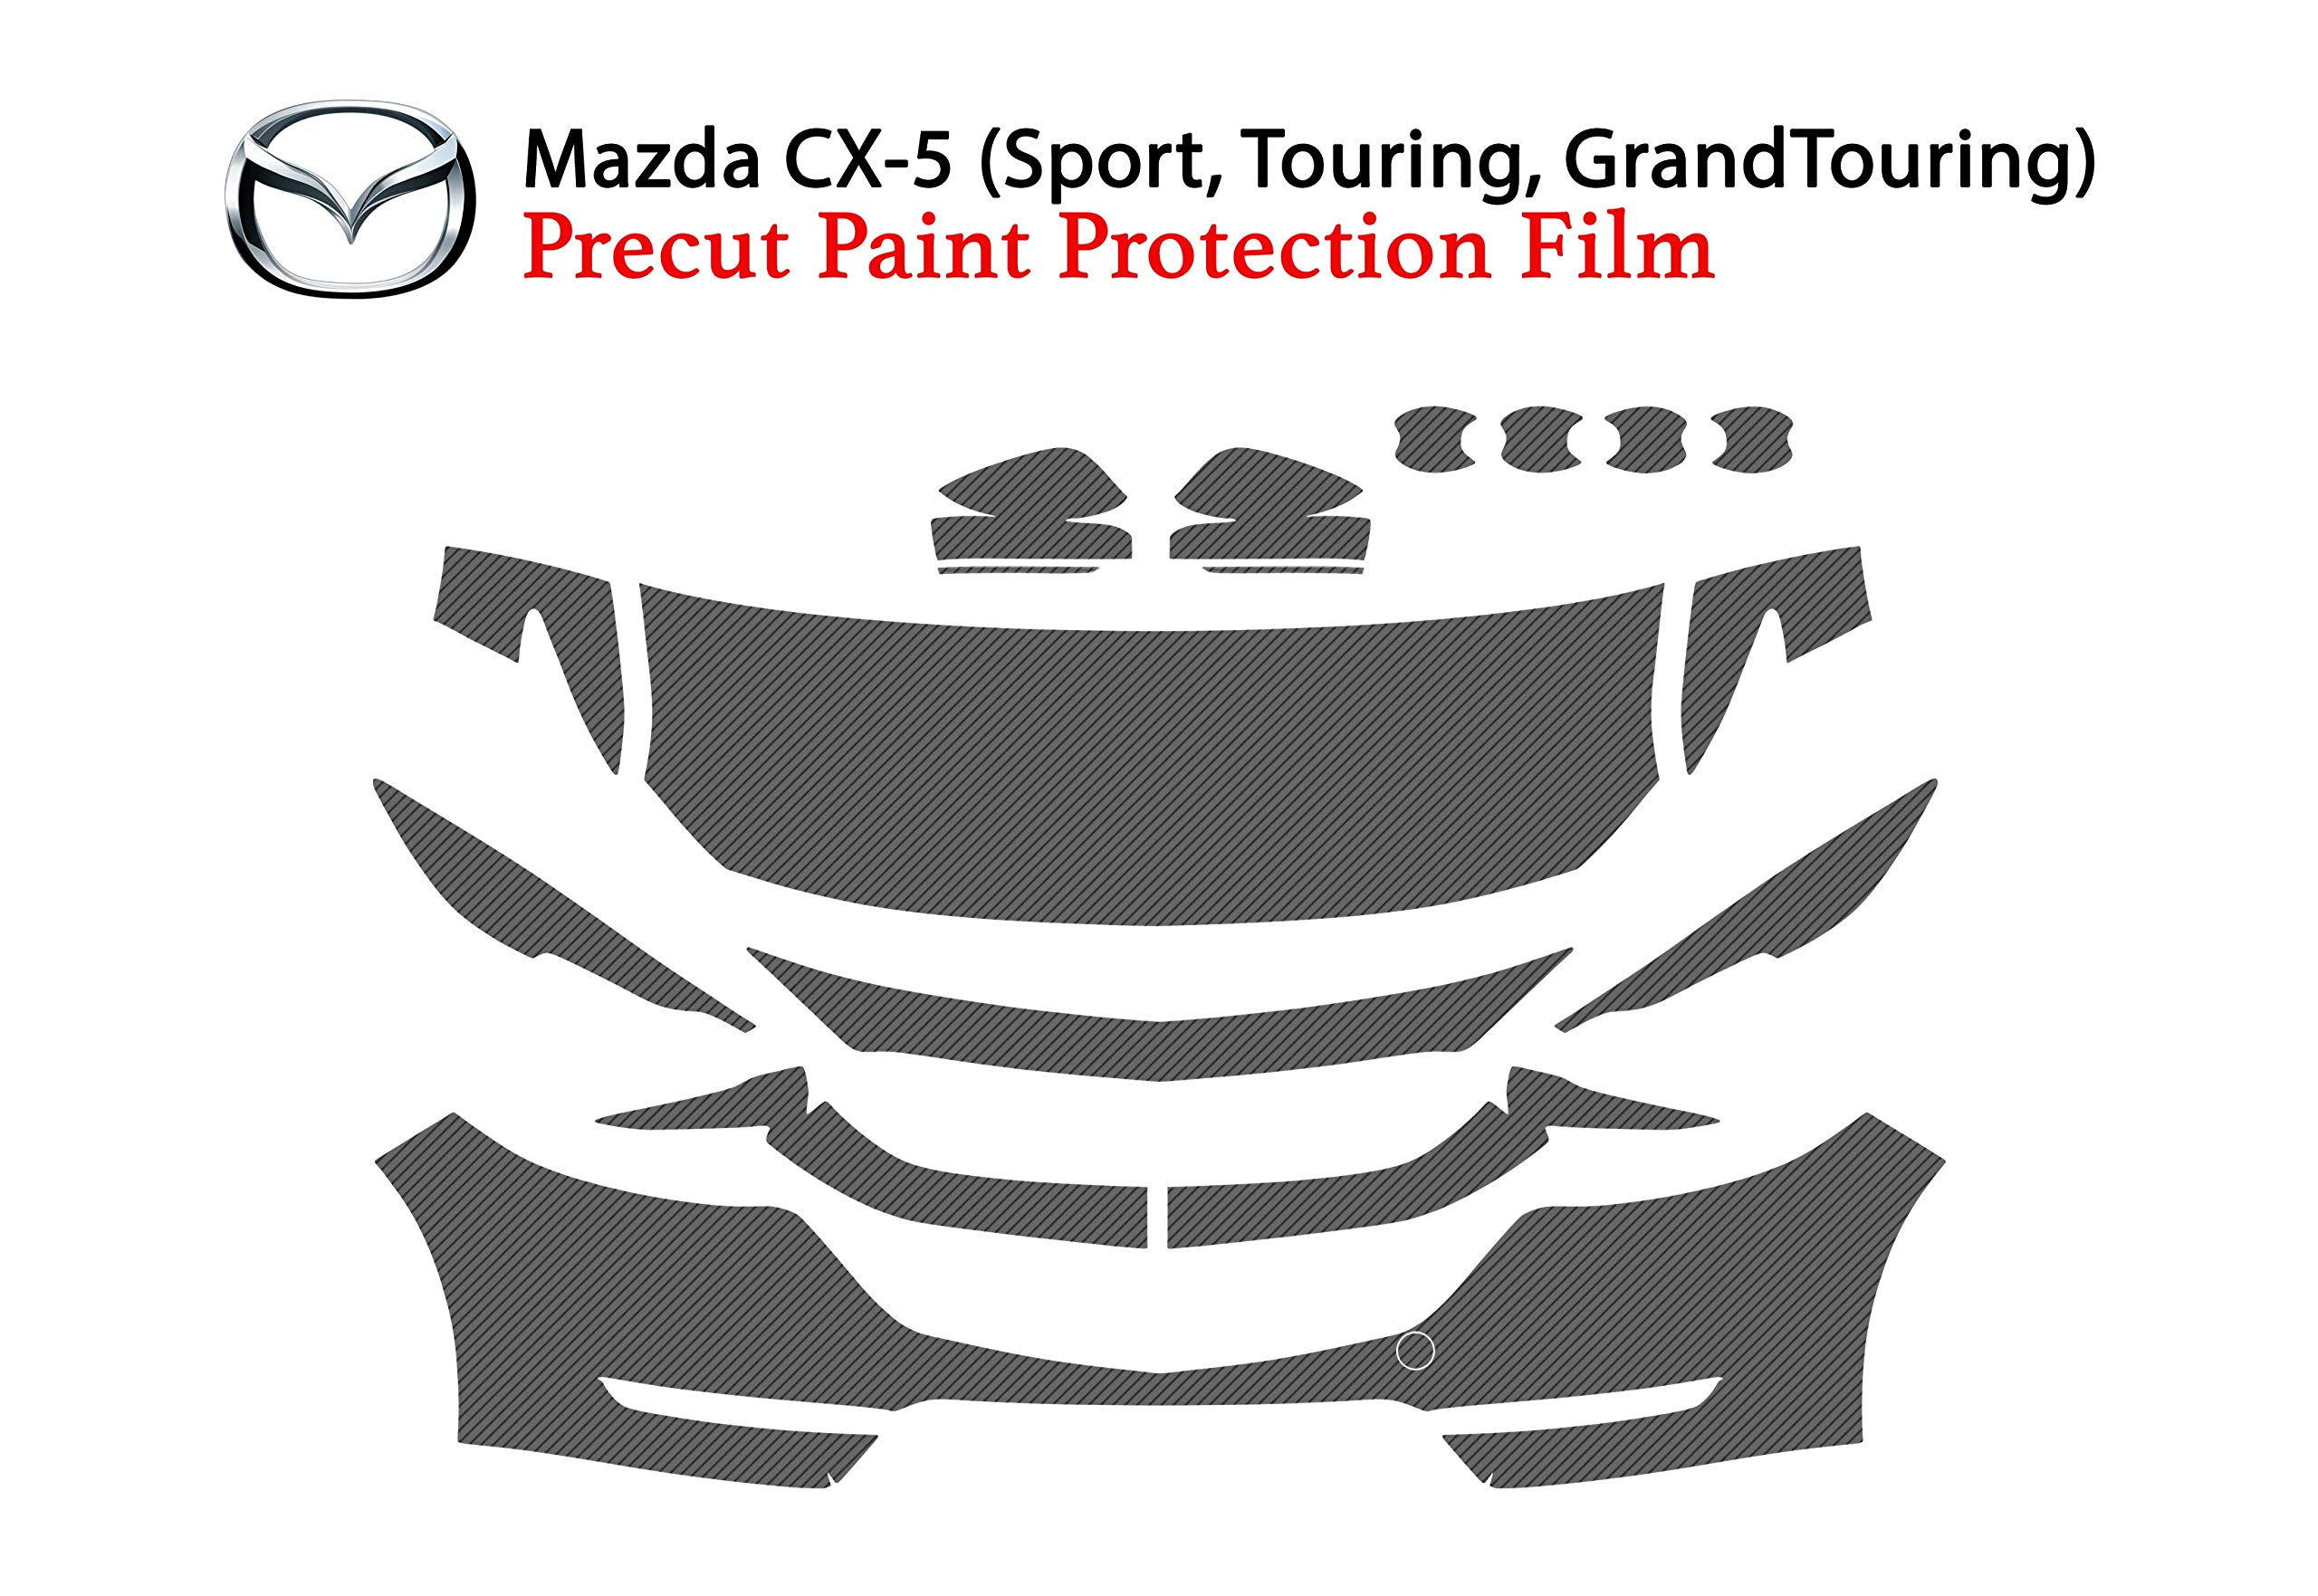 The Online Liquidator Clear Bra Paint Protection Film Kit fits Mazda CX-5 2017-2018 - Car Vinyl Wrap Shield Cover